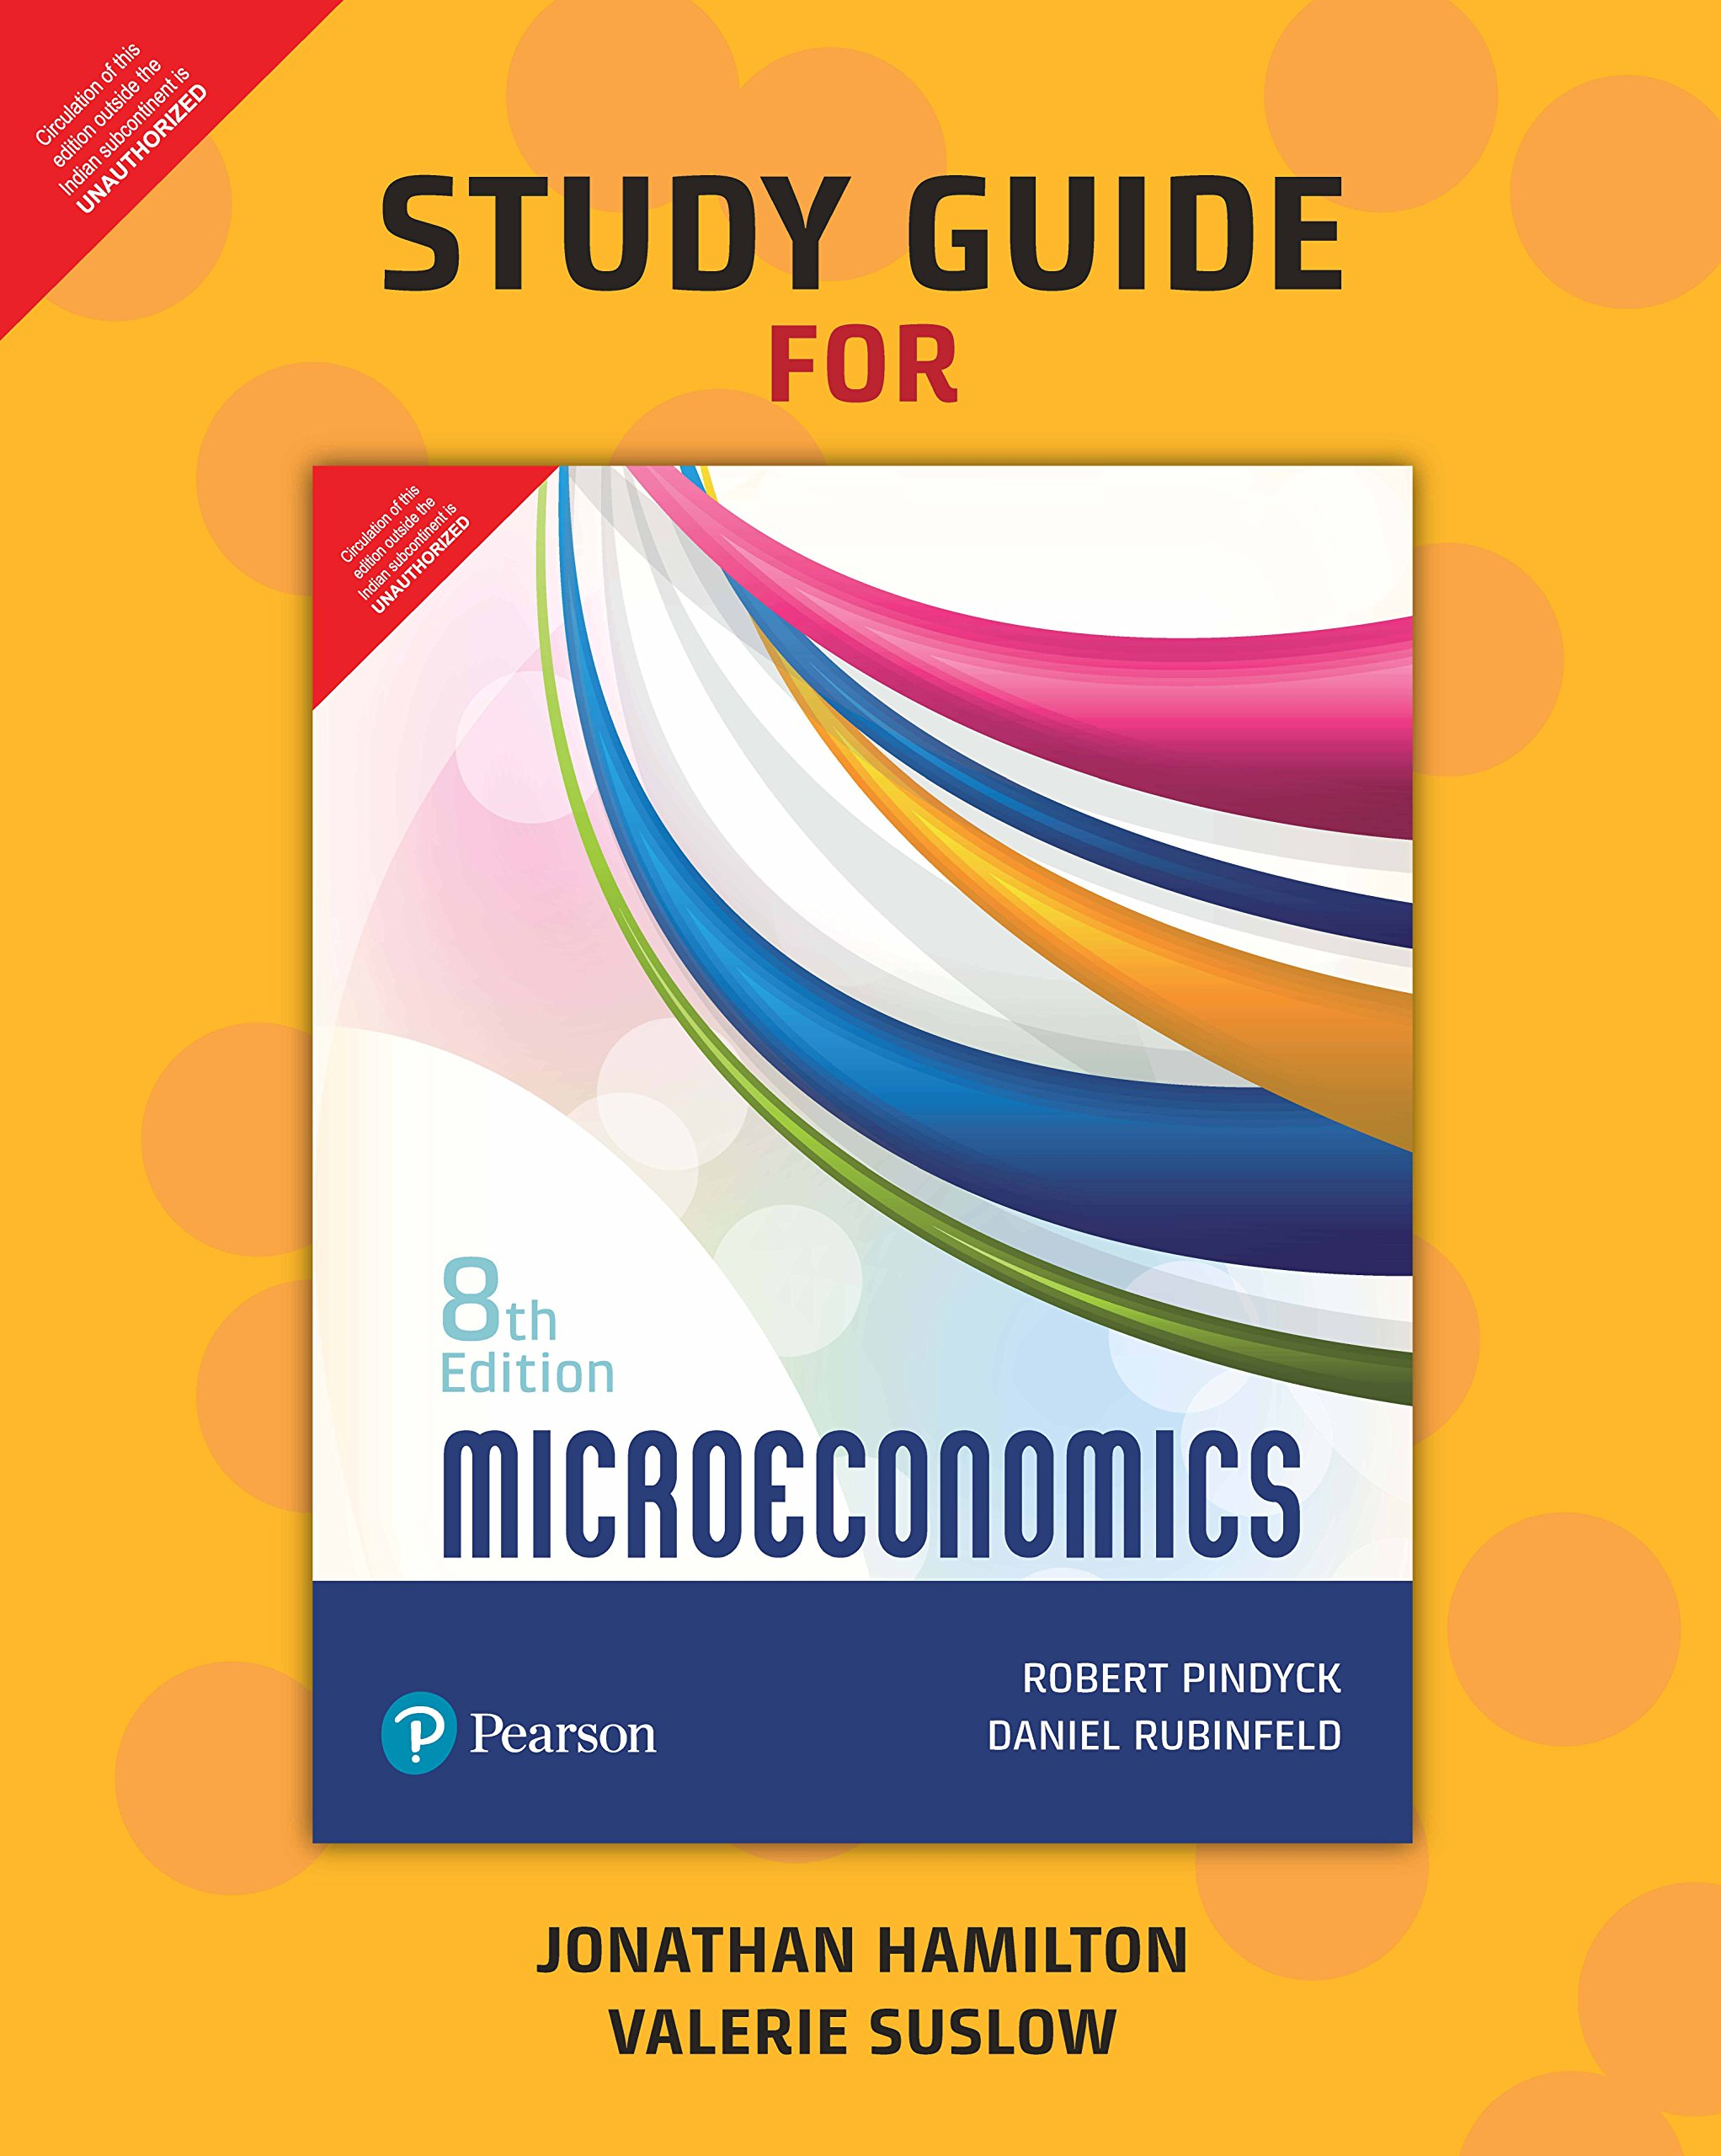 Buy Study Guide for Microeconomics by Pearson Book Online at